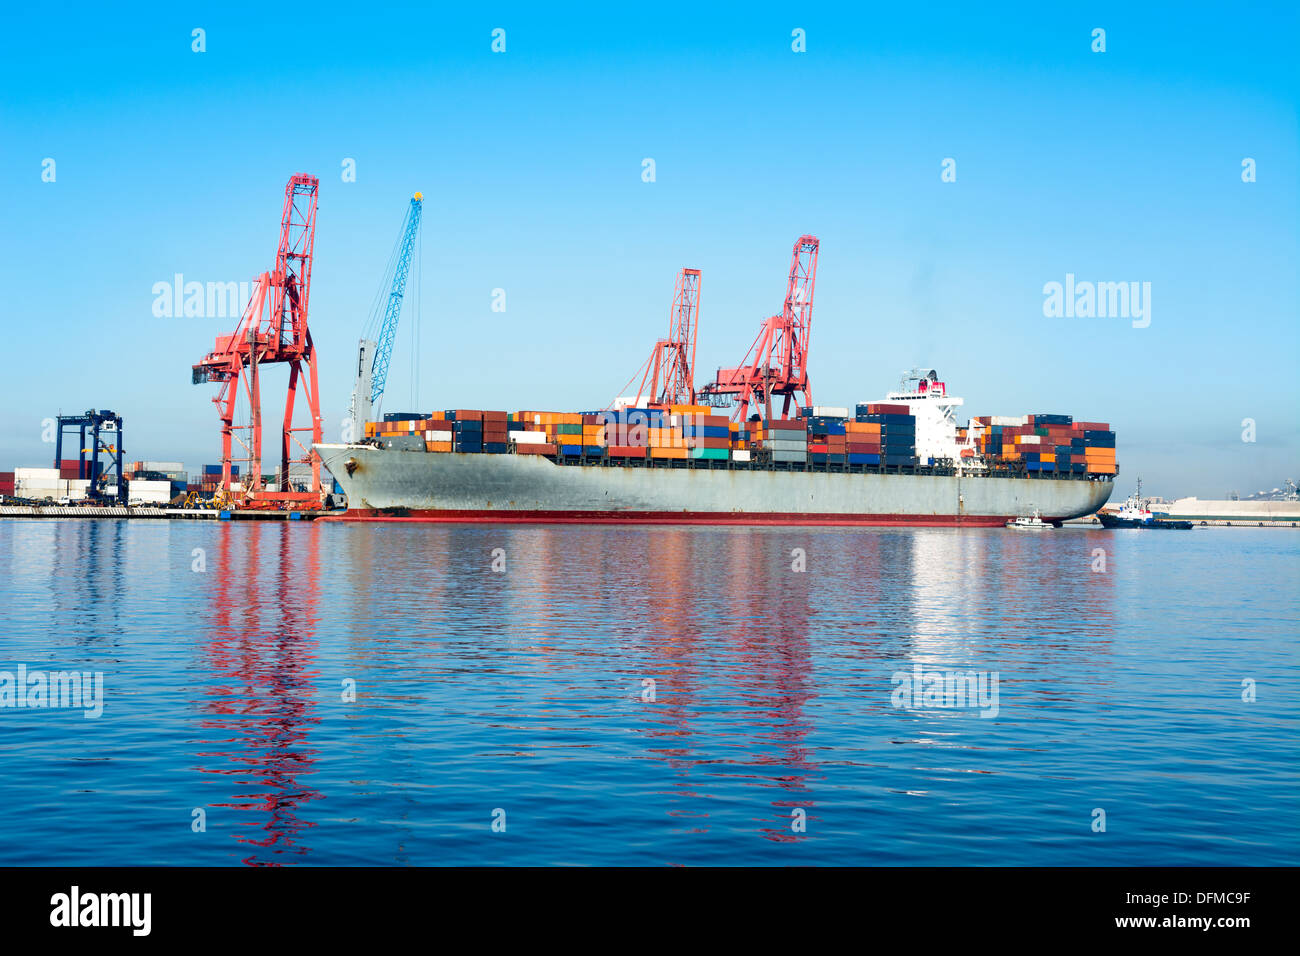 A cargo freighter with colorful cargo containers being loaded for international transportation - Stock Image